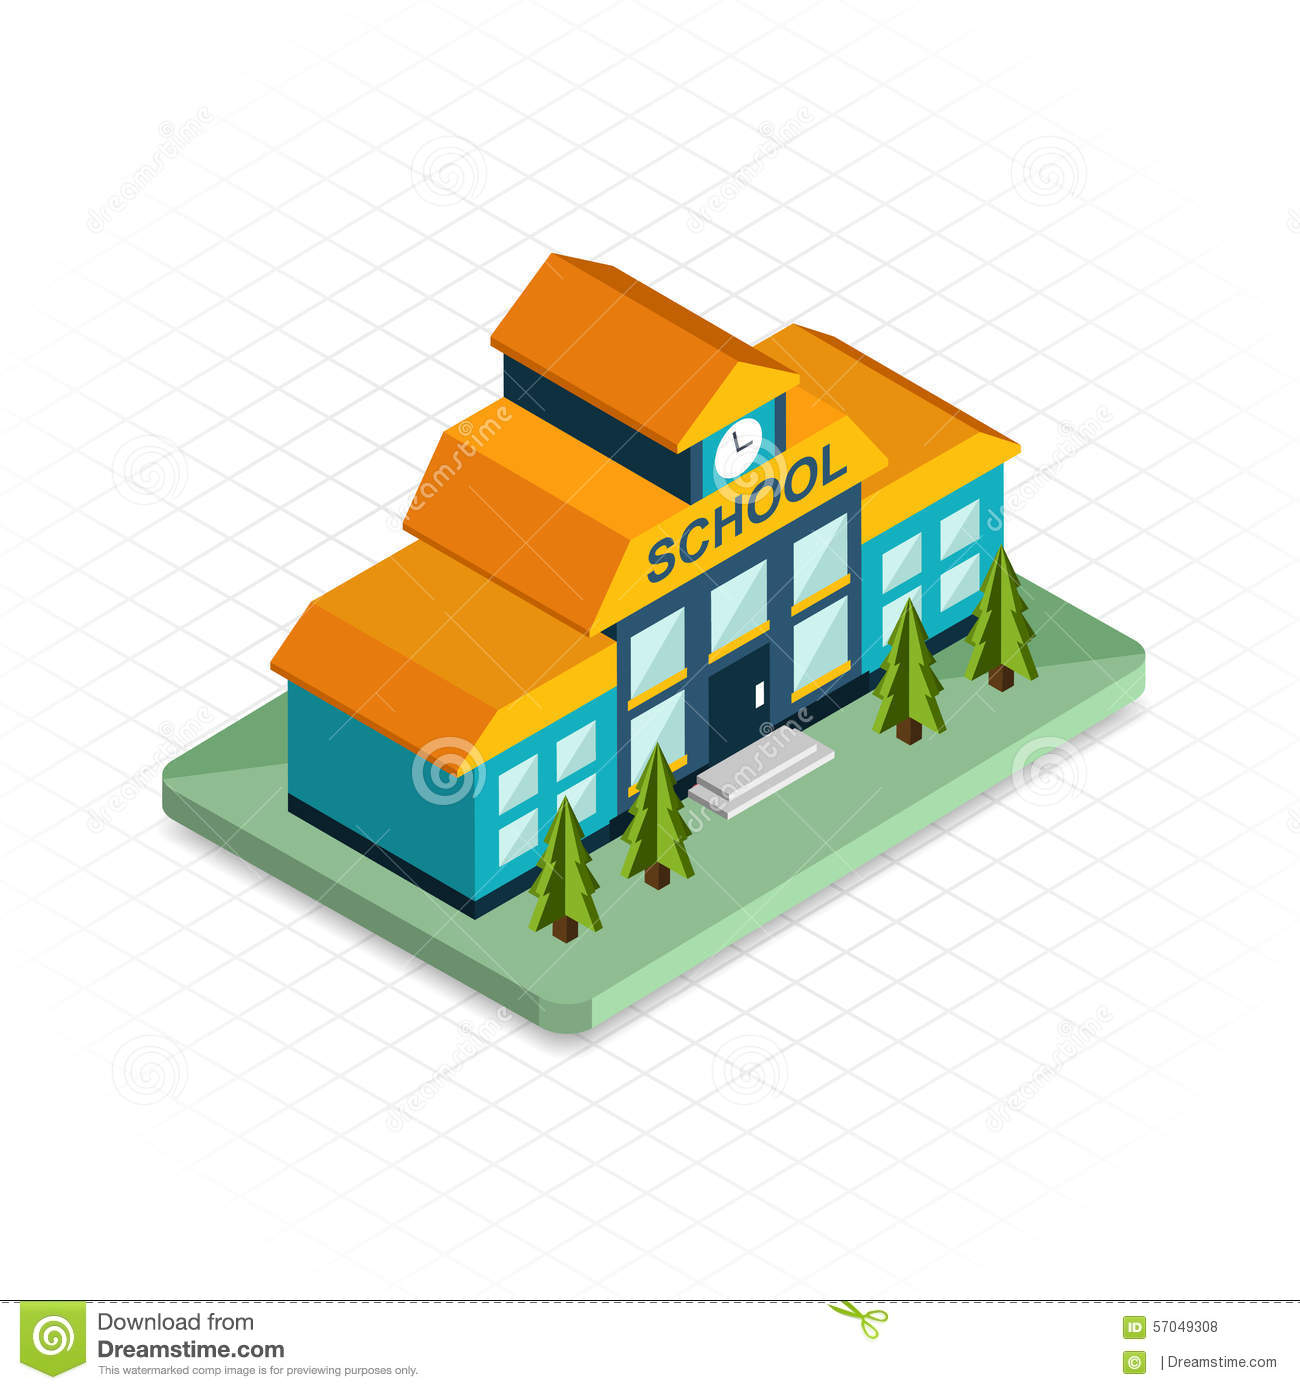 School building isometric 3d pixel design icon stock for Build house online 3d free